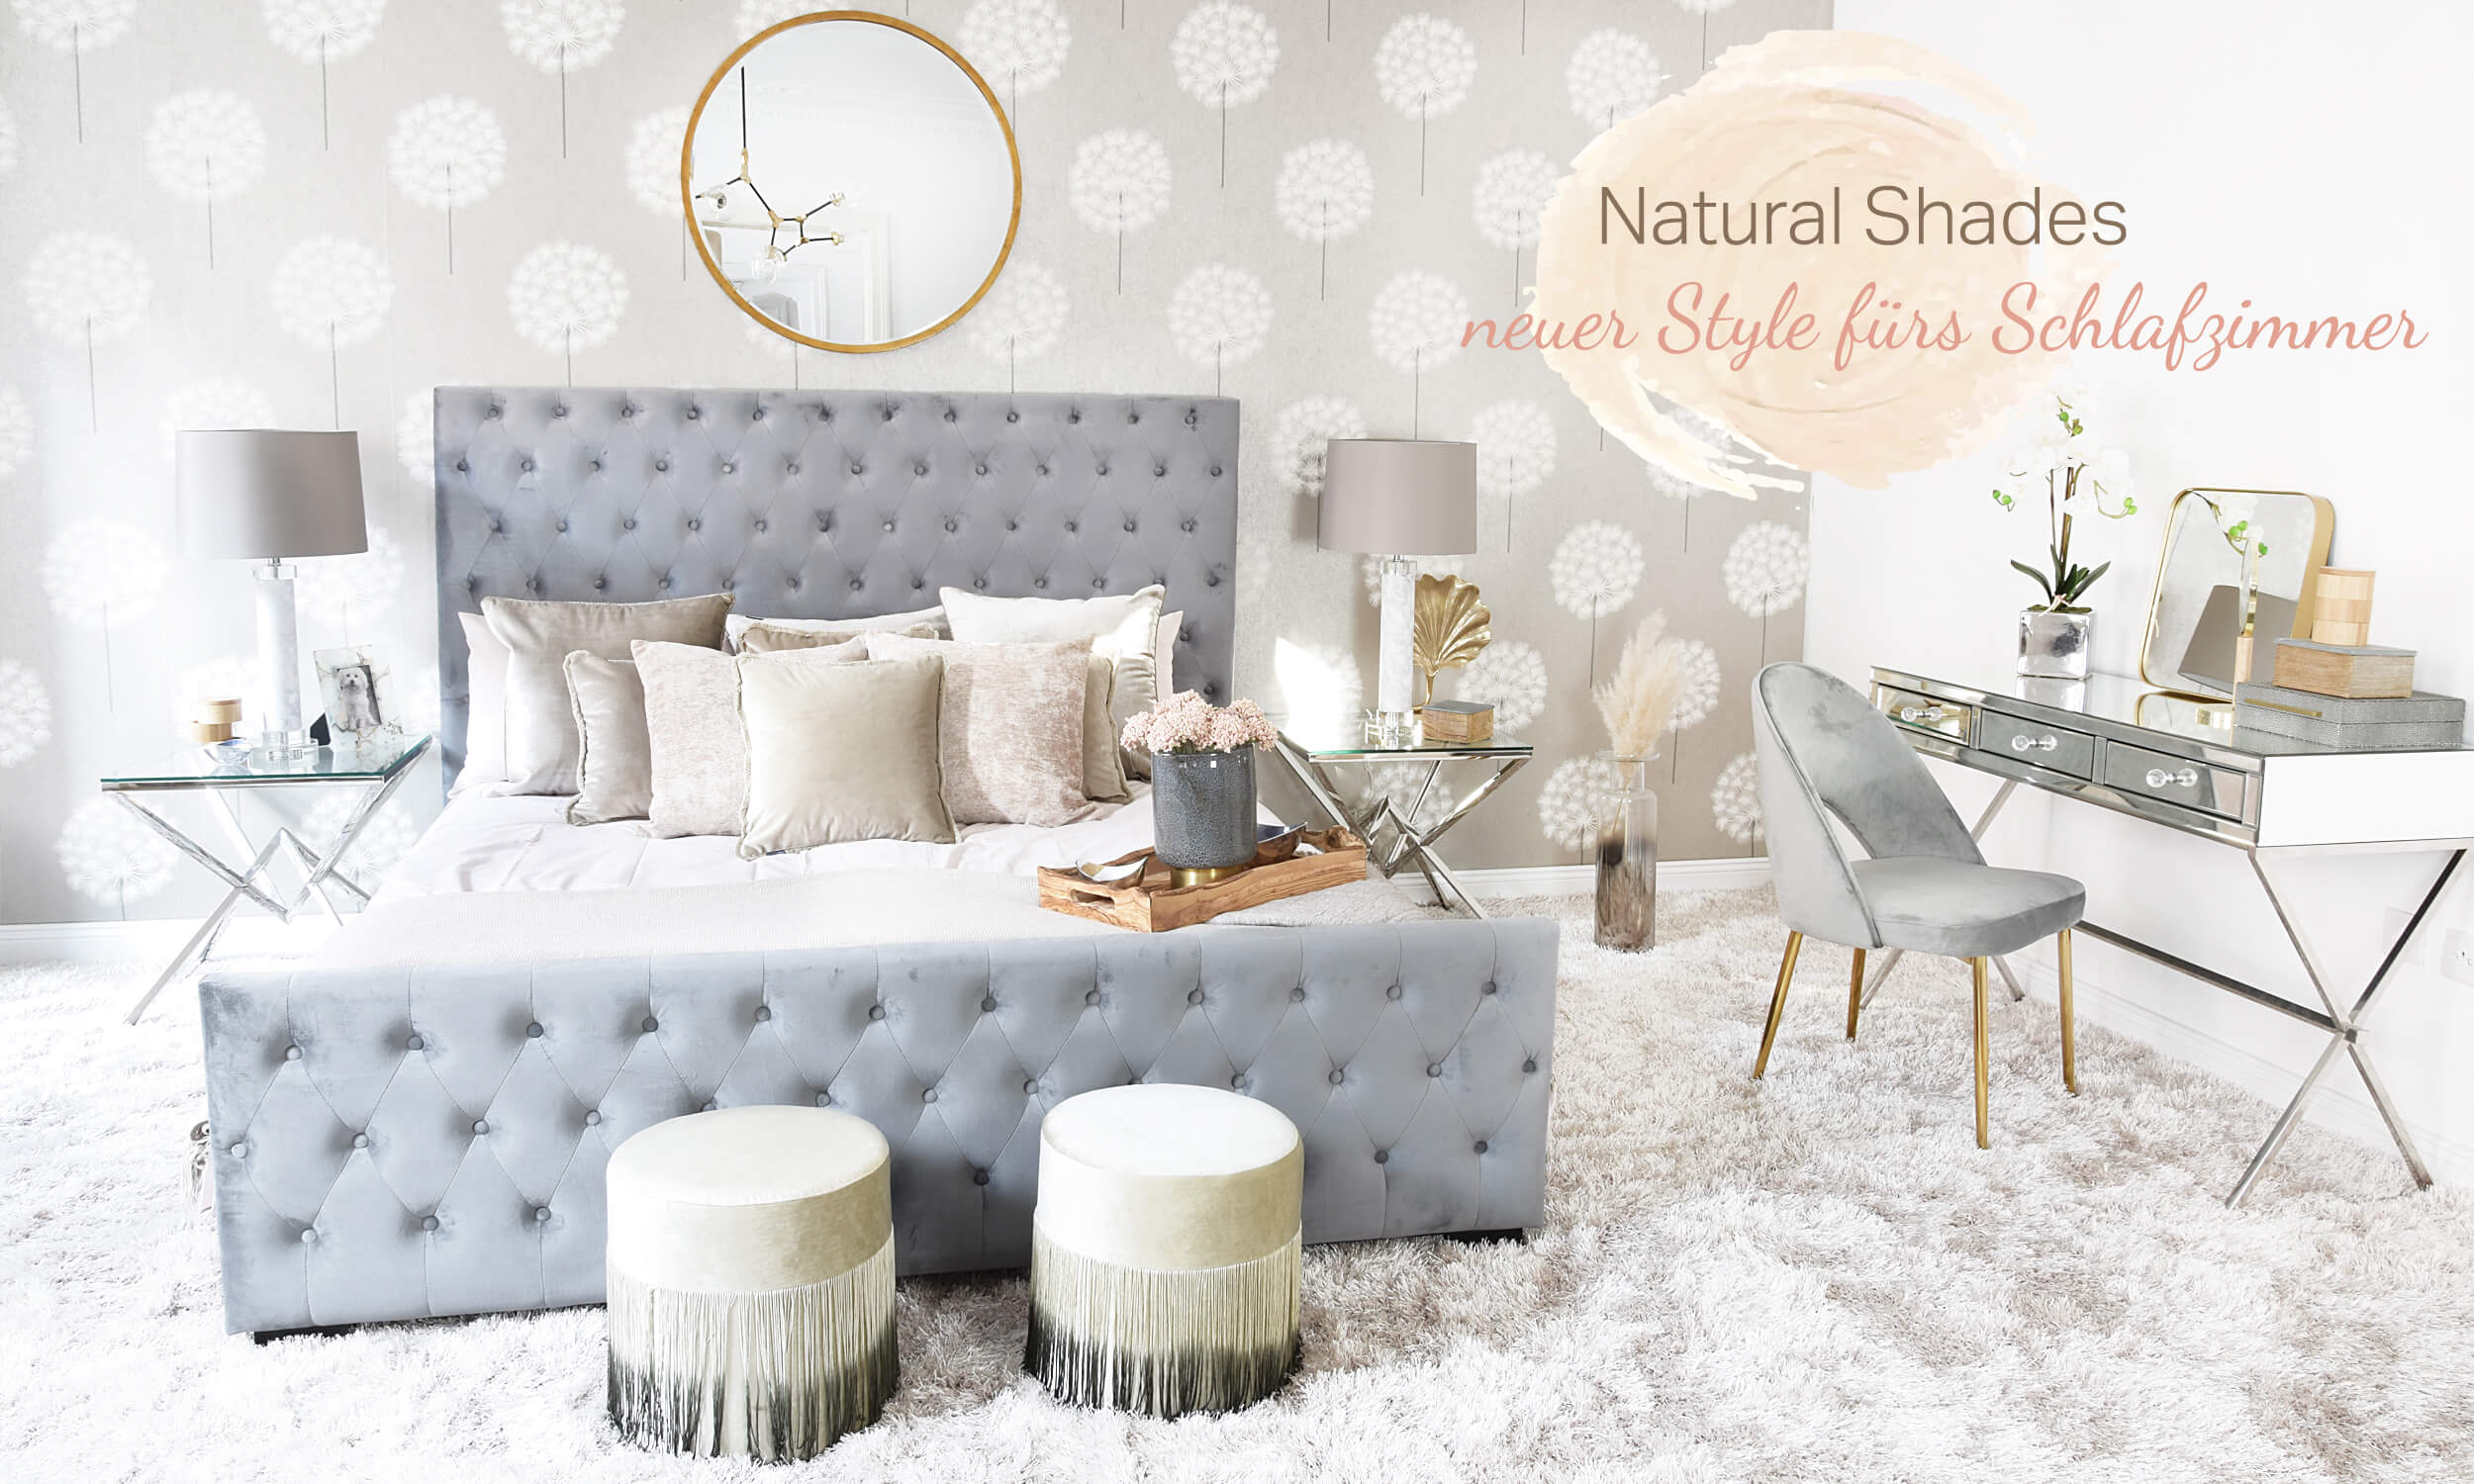 Natural Shades Bedroom Schlafzimmer In Naturtönen Looks